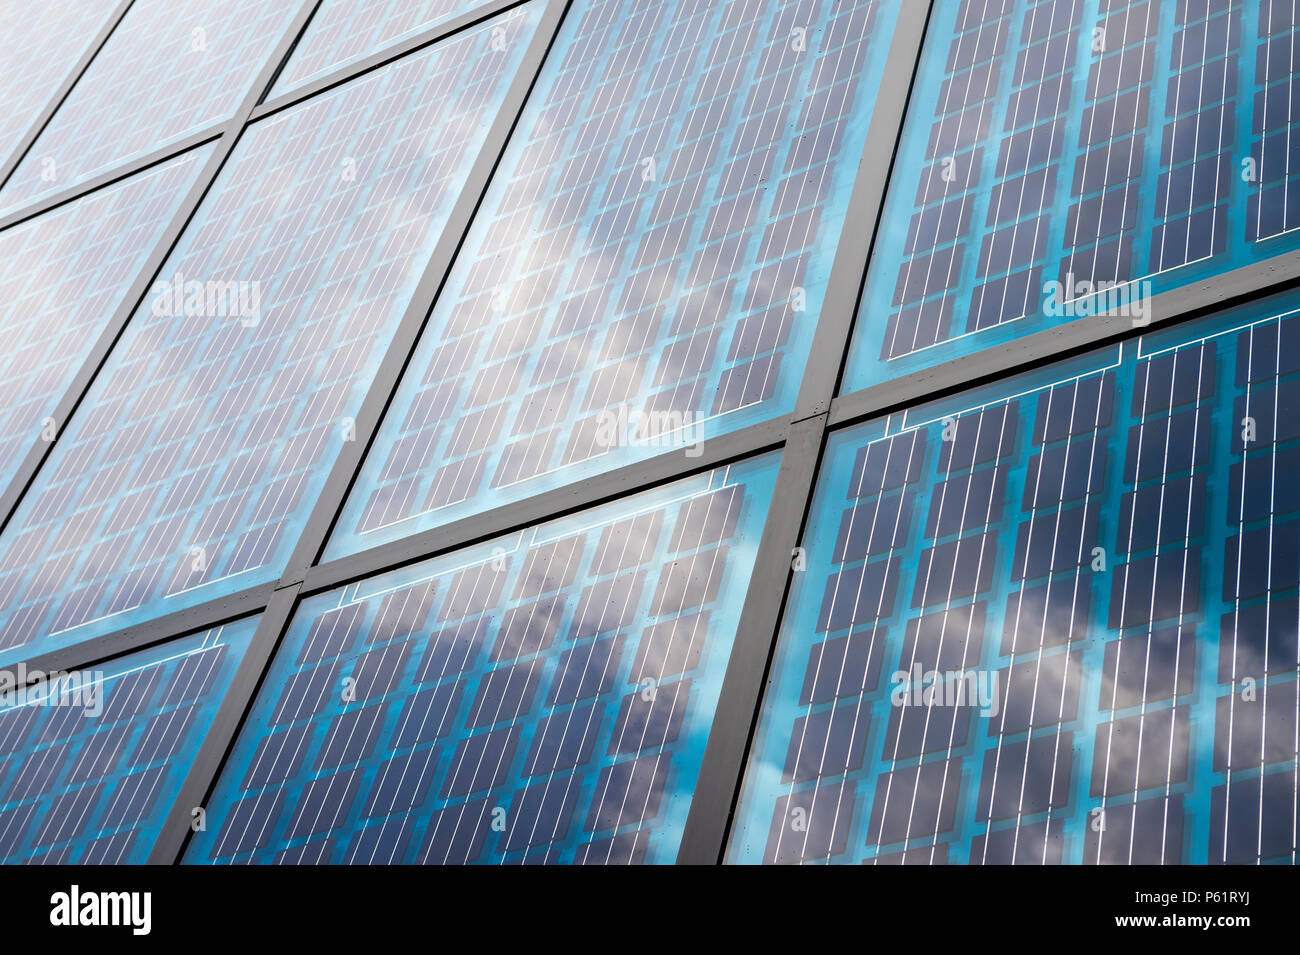 Solar panels blue grid with metal frames in a full-frame background close-up - Stock Image